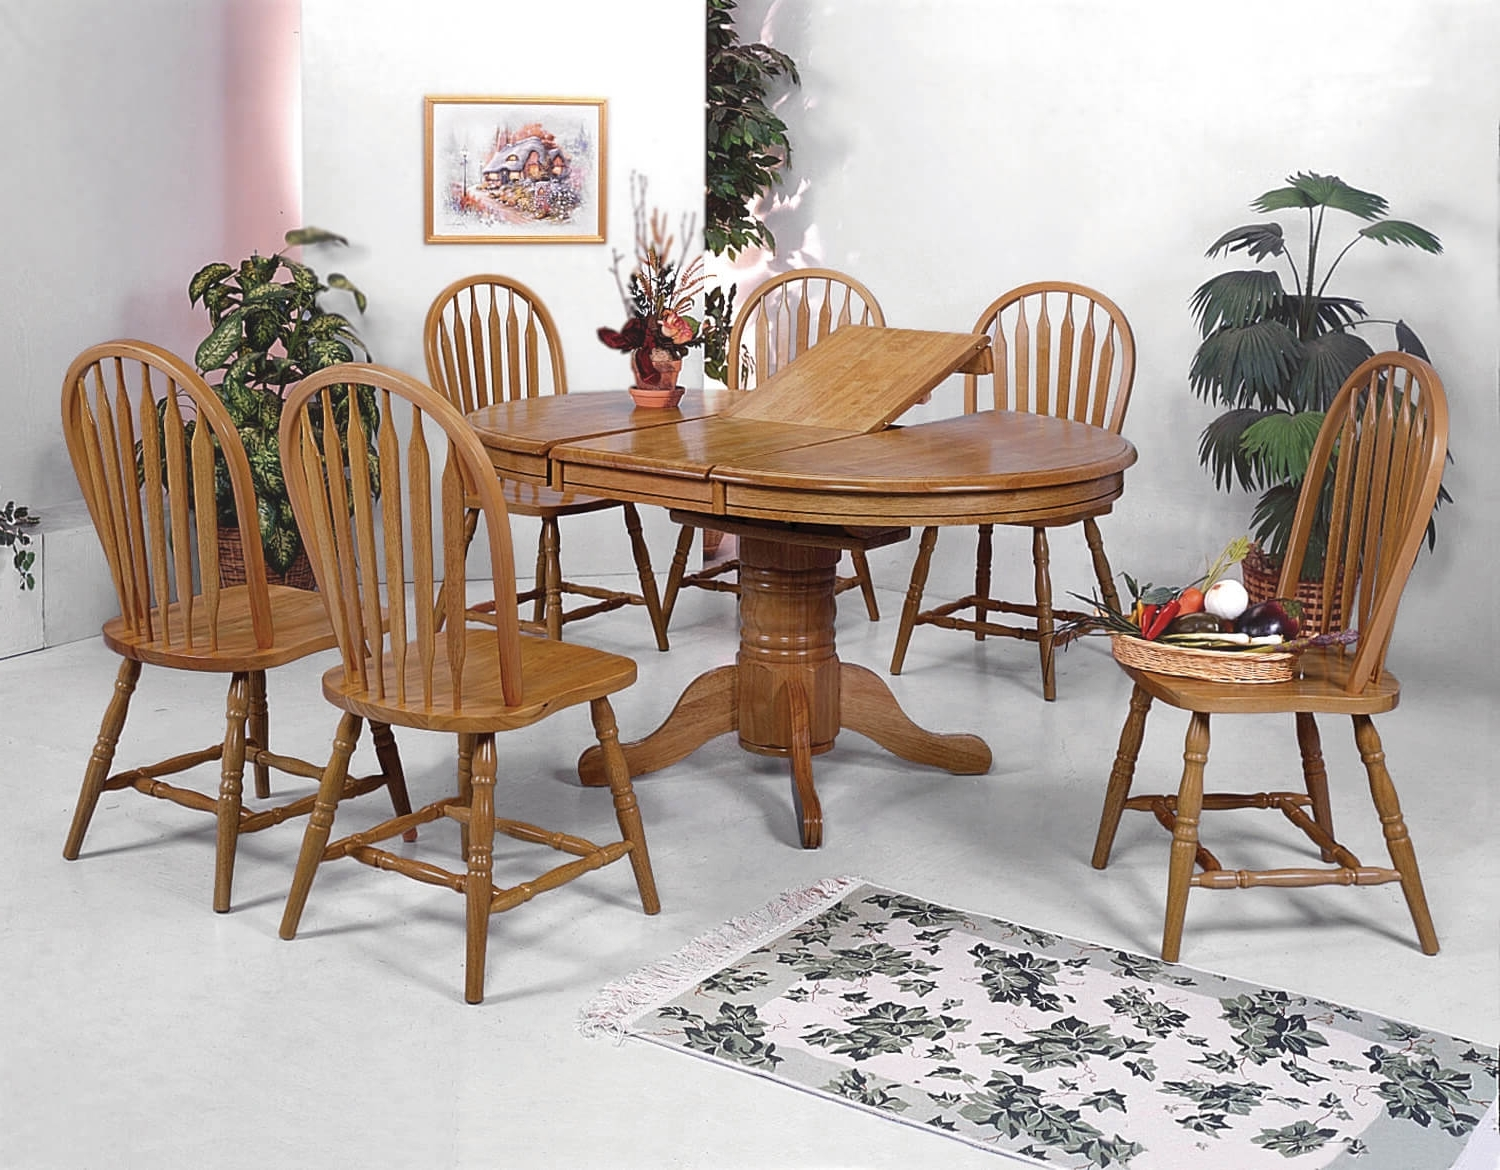 Oak Furniture Dining Sets Pertaining To Best And Newest Crown Mark Dark Oak Dining Room Set (View 5 of 25)